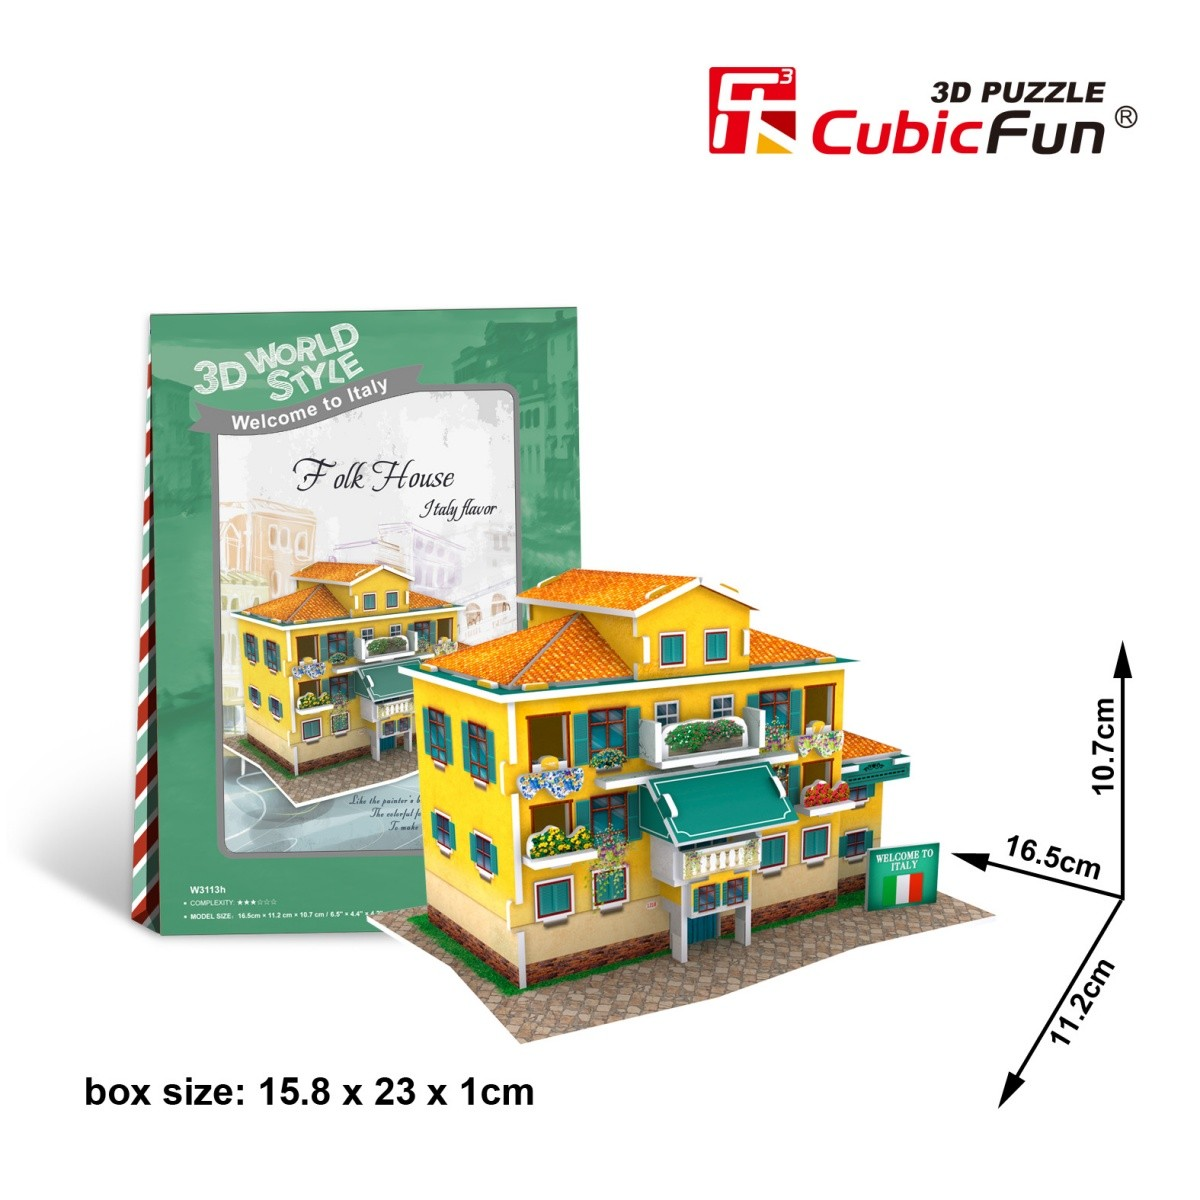 cubic-fun-3d-puzzle-world-style-welcome-to-italy-26-teile-puzzle-cubic-fun-w3113h